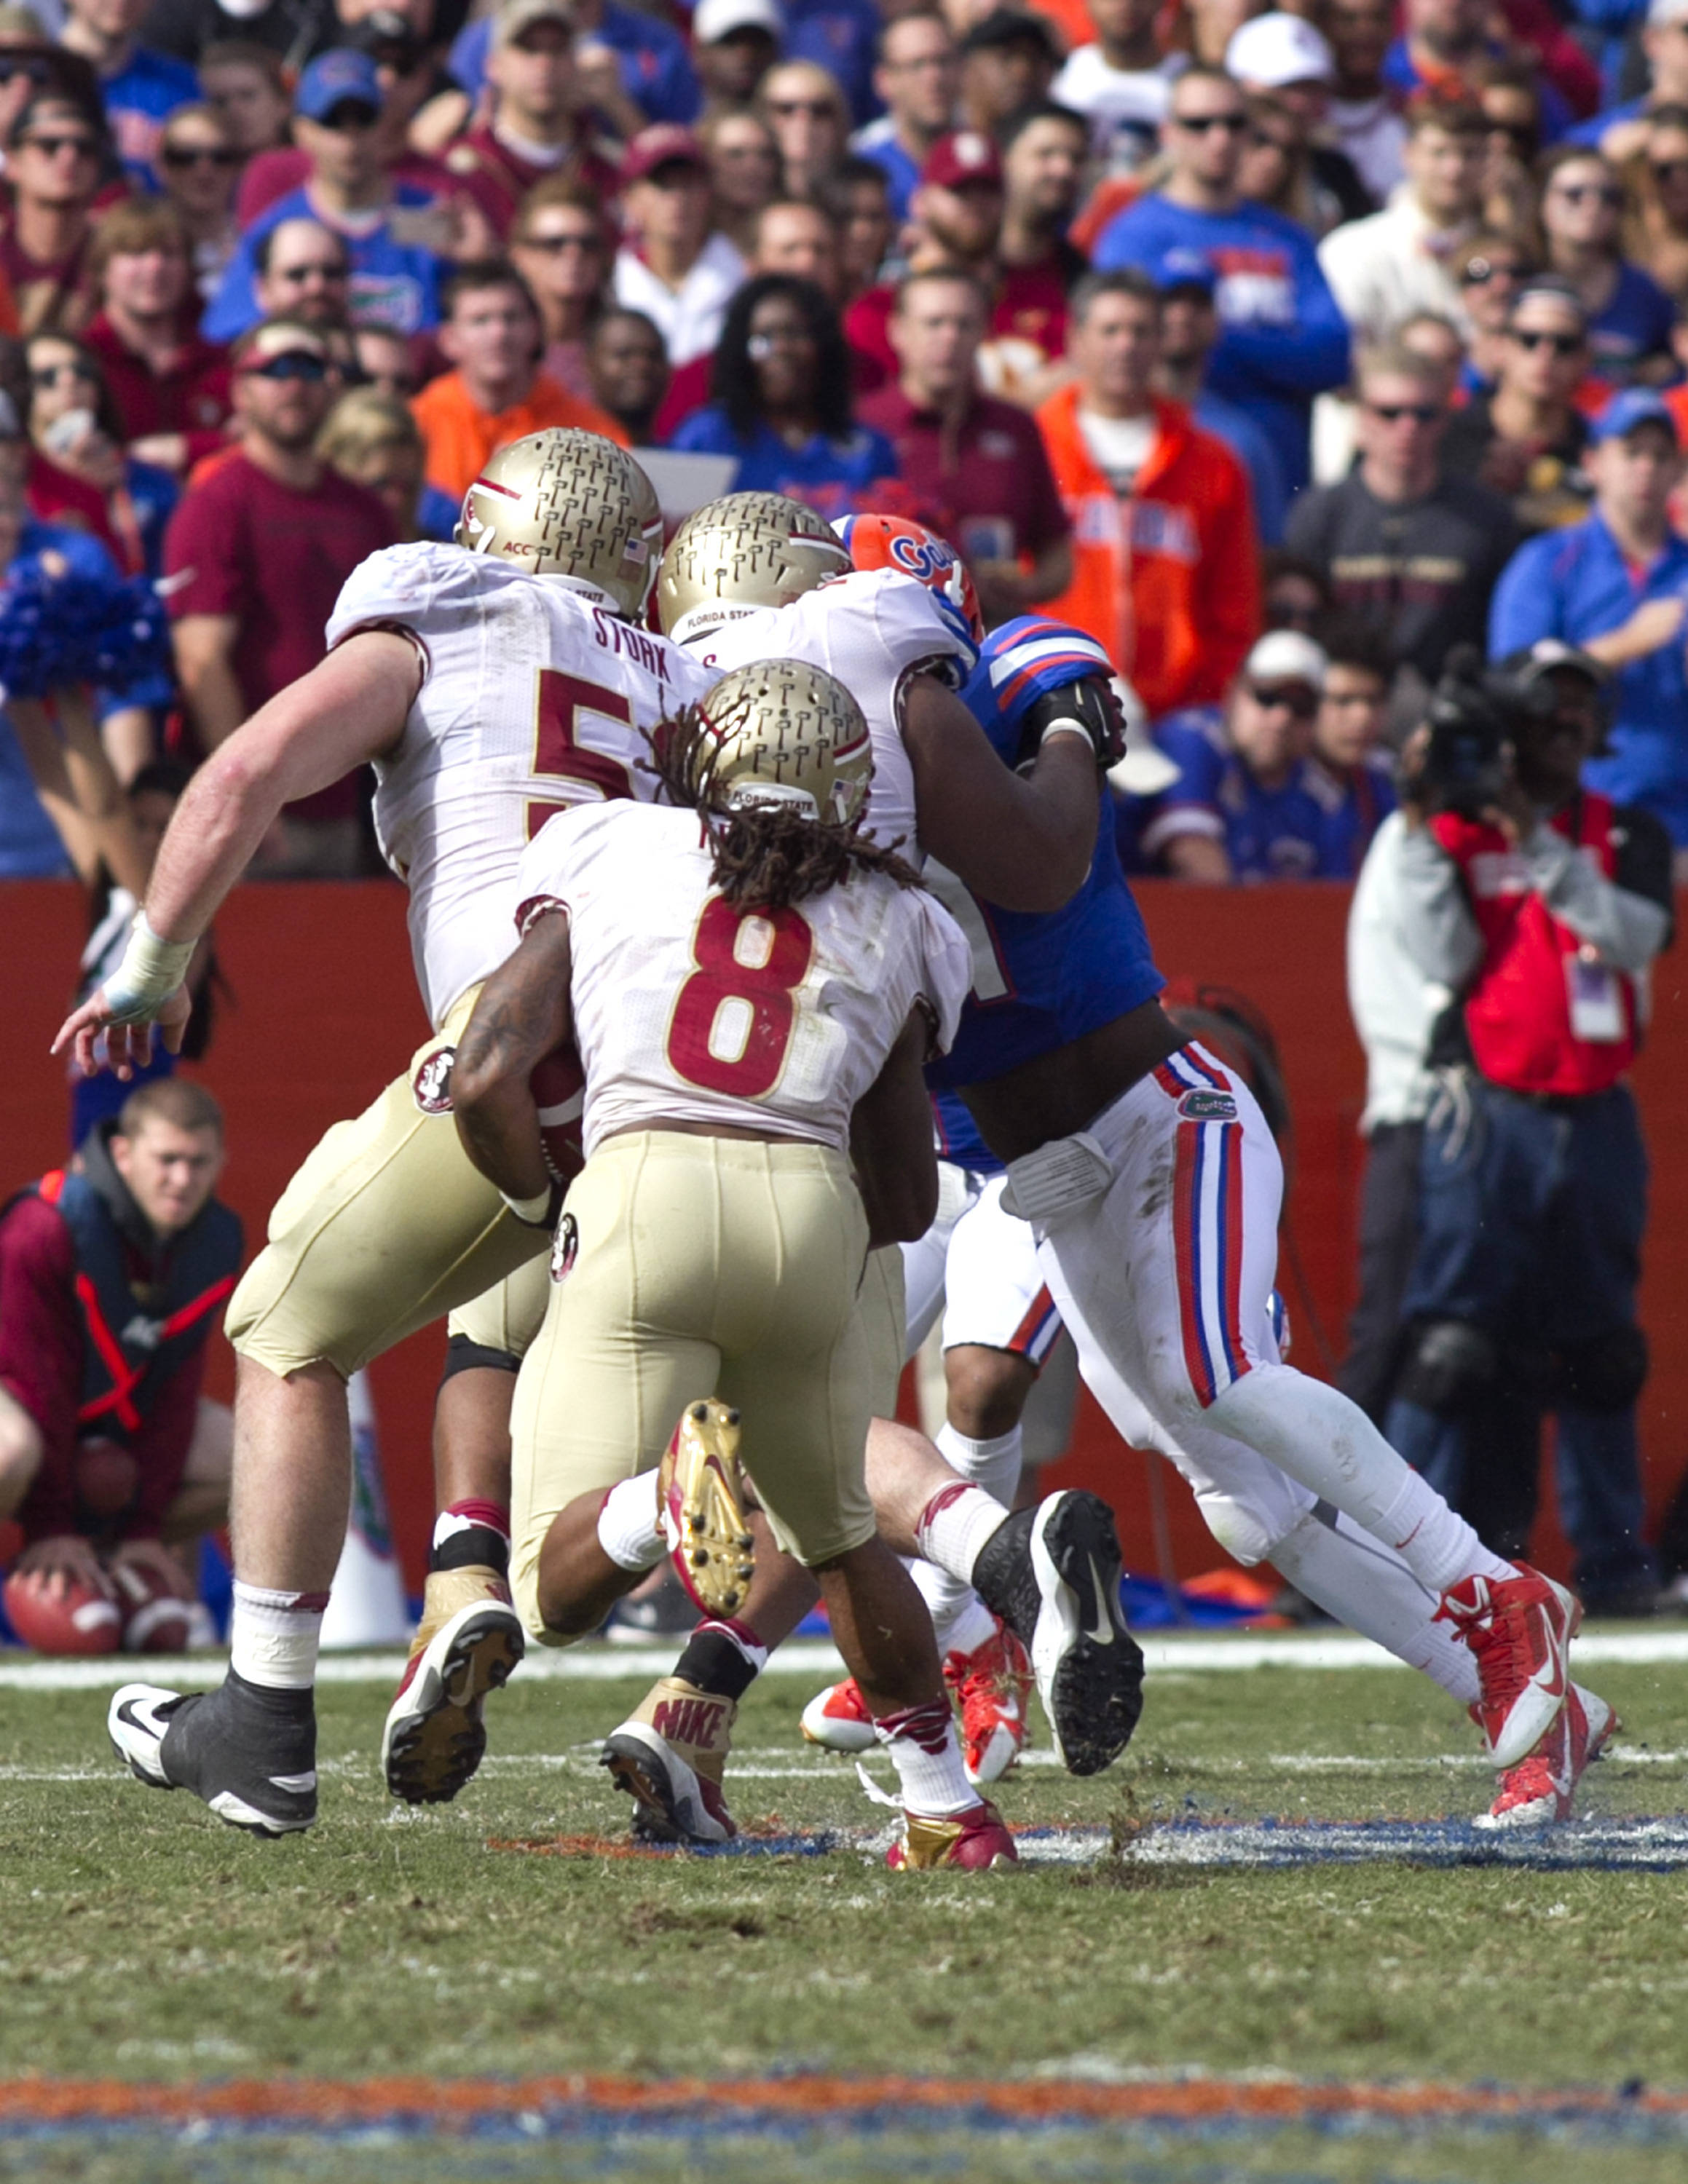 Devonta Freeman (8) following his blockers, FSU vs Florida, 11-30-13,  (Photo by Steve Musco)